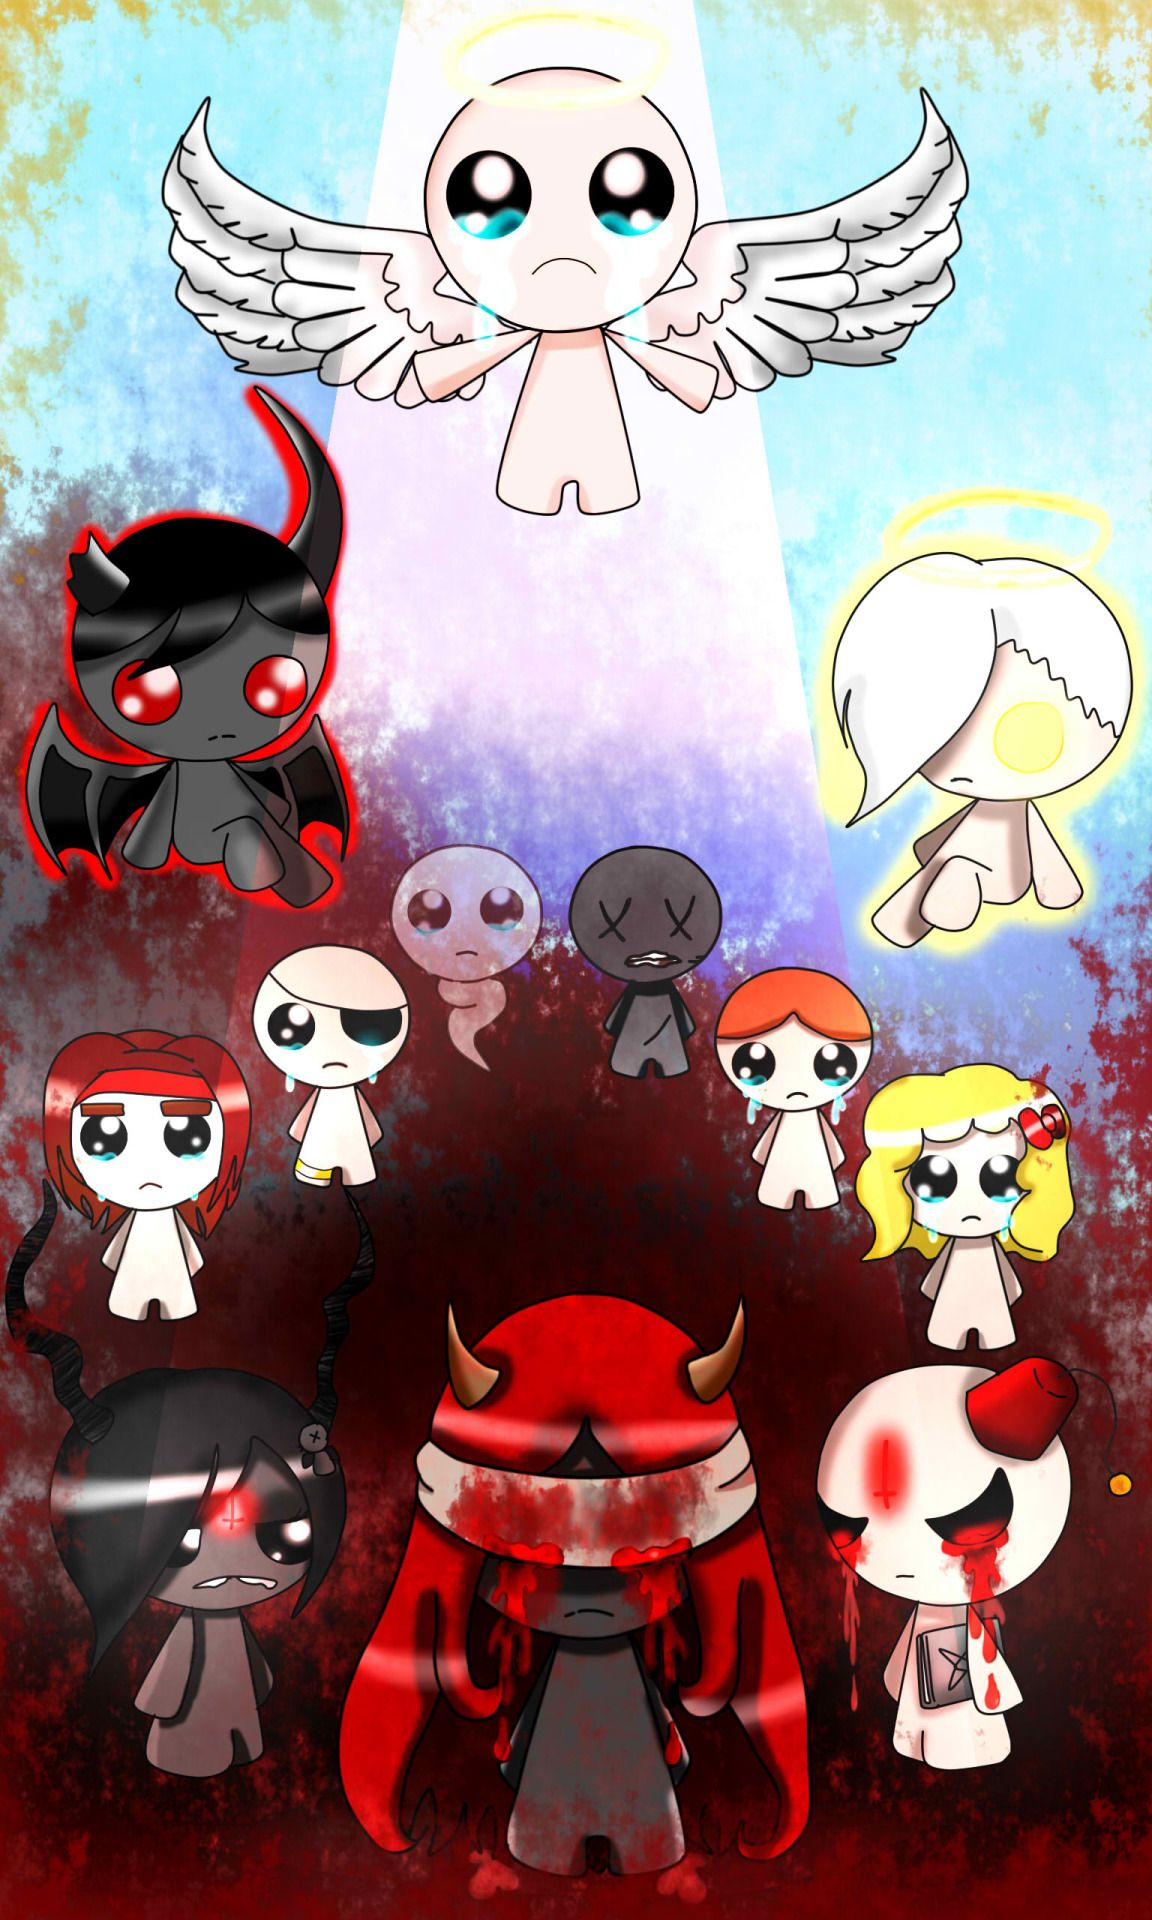 Binding Of Isaac Bedroom: Deadbirdeve: A Fanart Of The Binding Of Isaac, I Wanted To